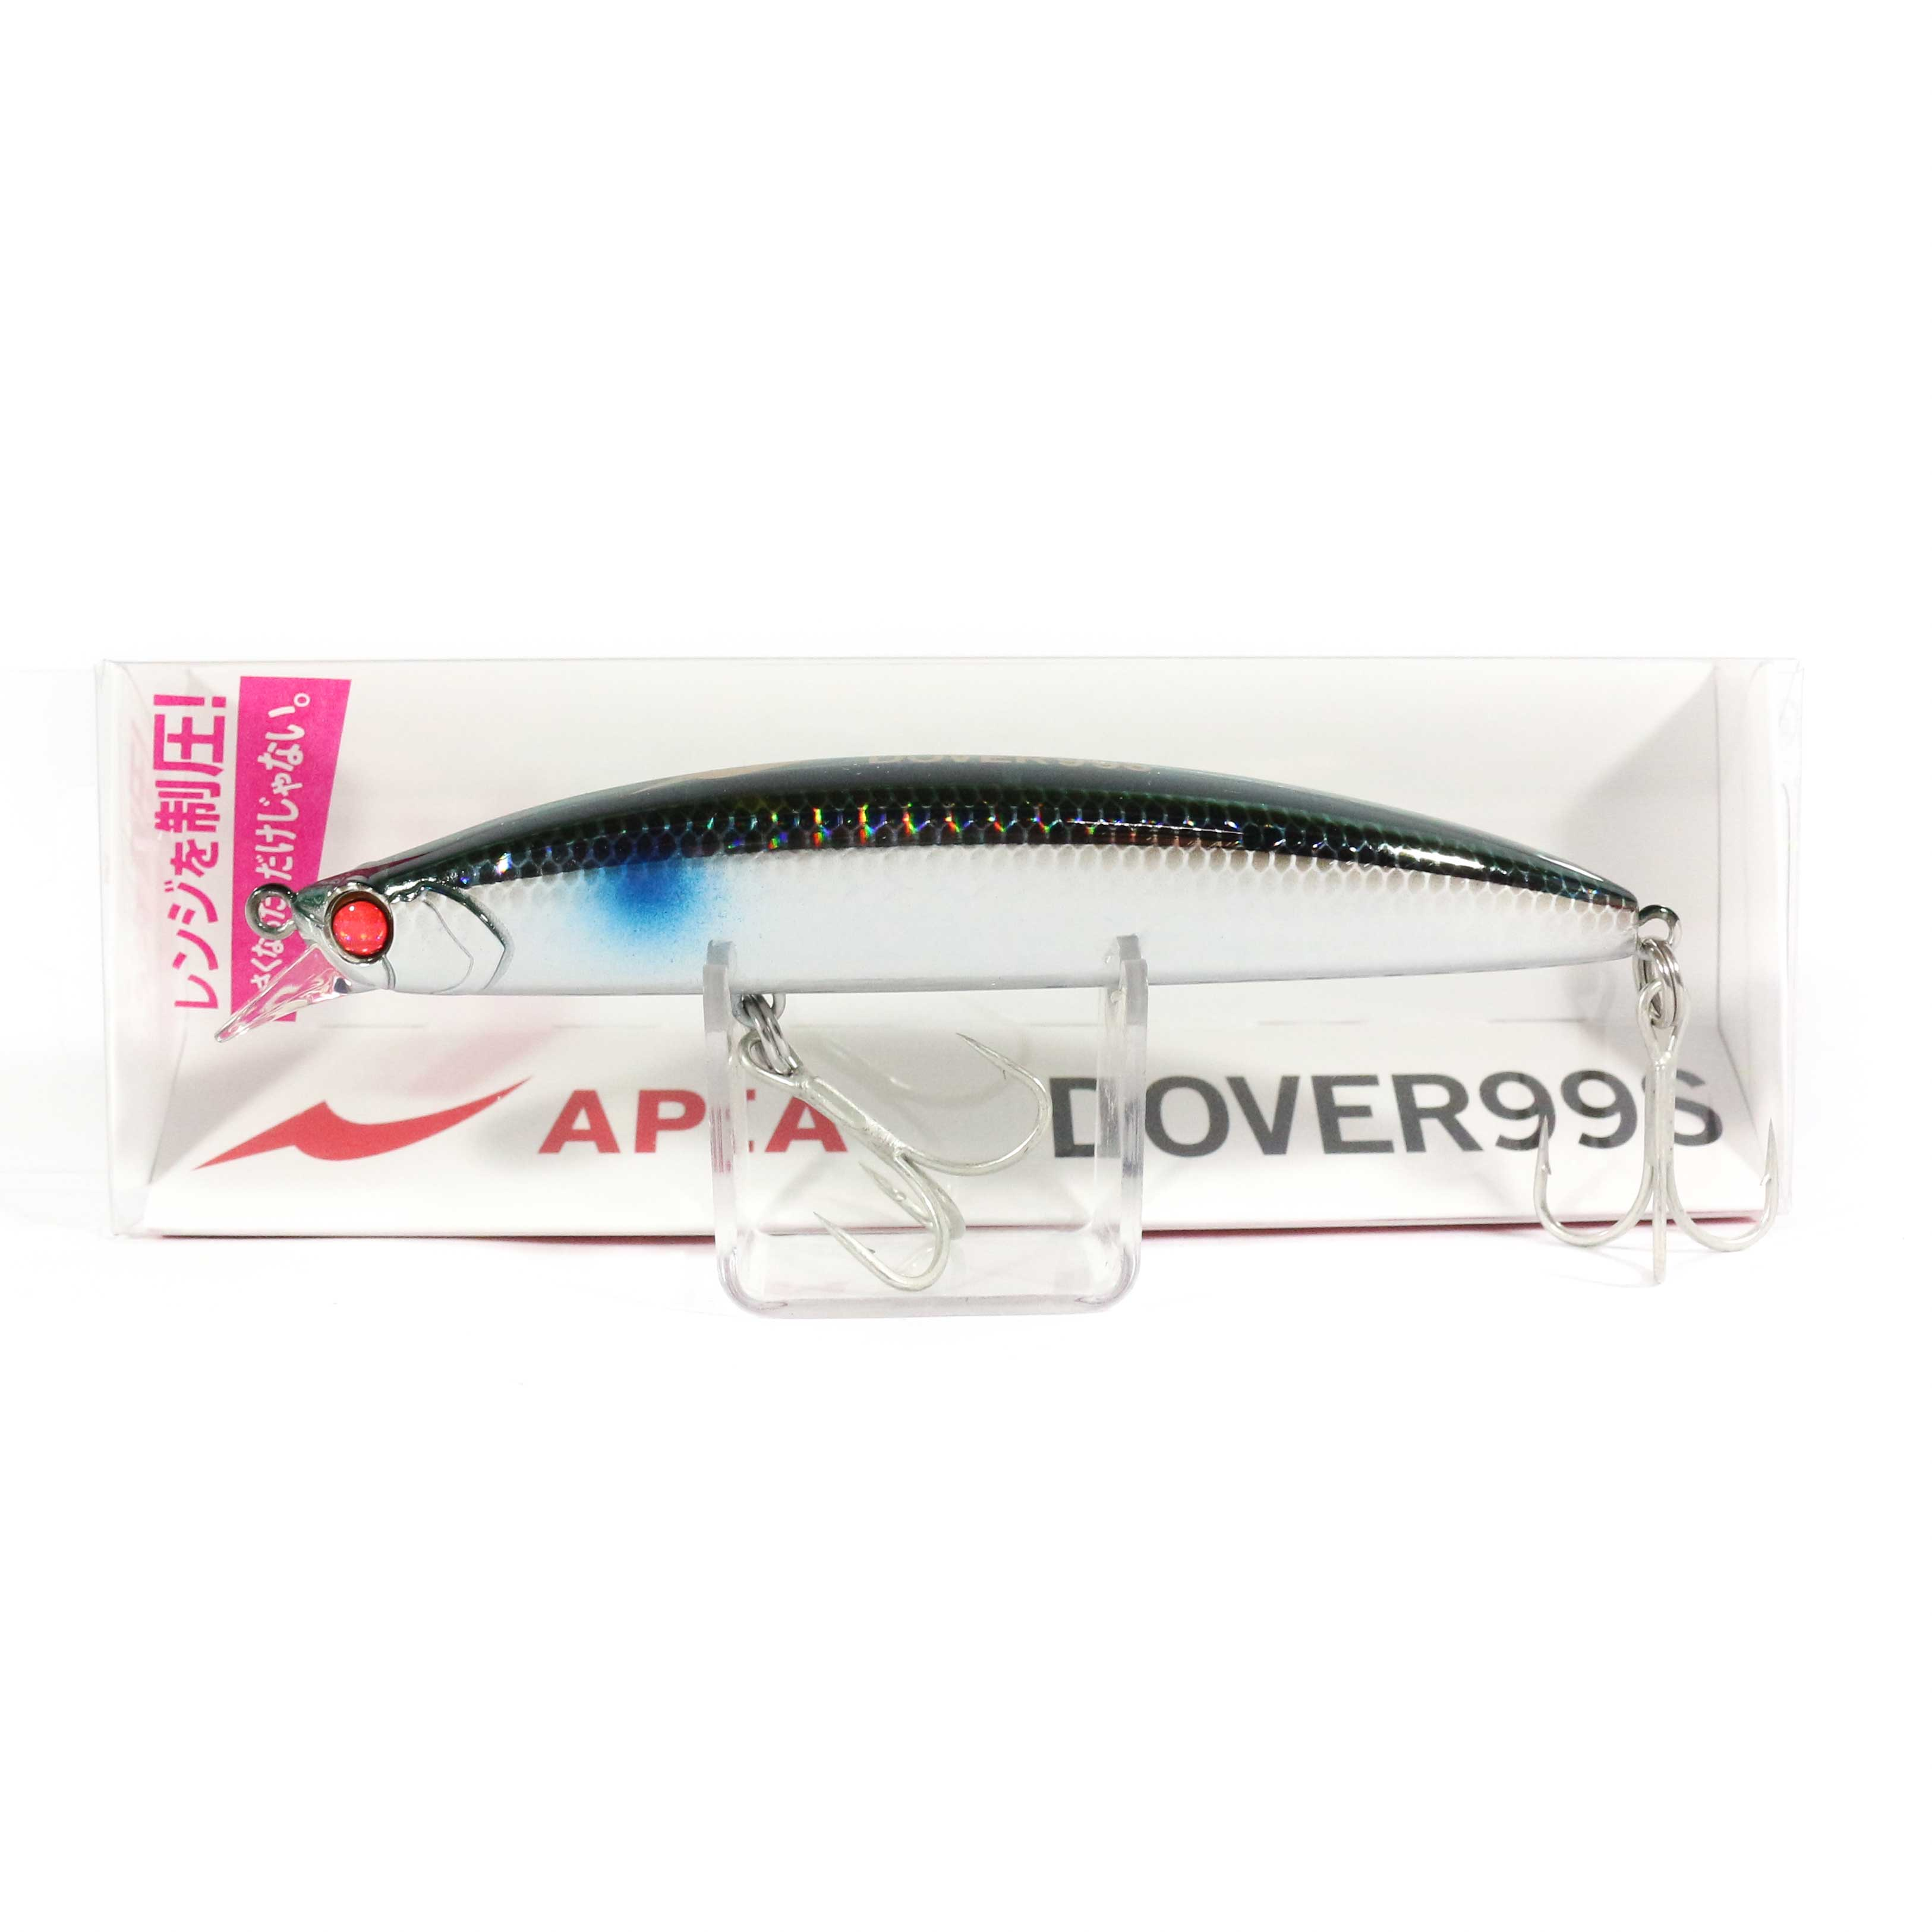 Apia Dover 99S Sinking Lure 05 (1727)